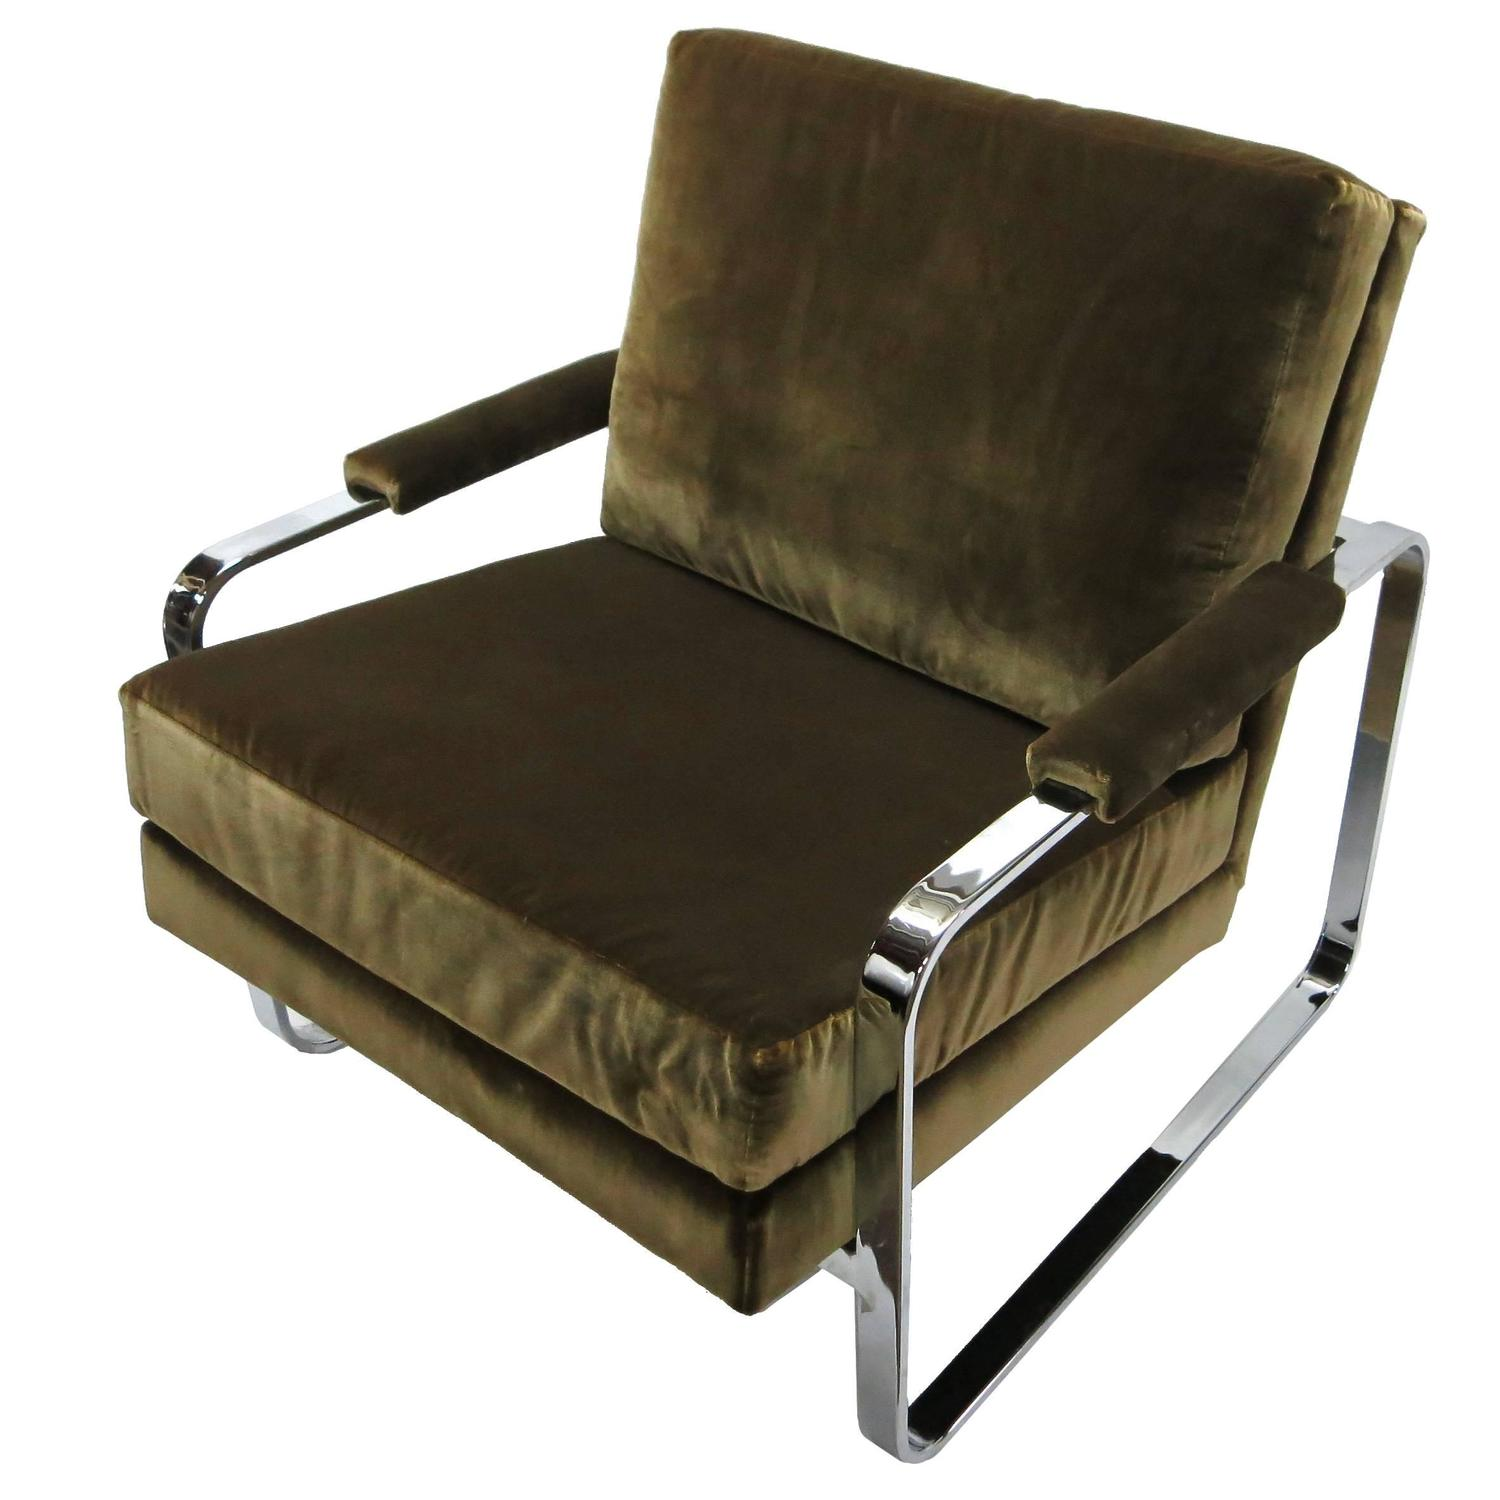 Flatbar lounge chair by bernhardt for flair division 1970 for Bernhardt furniture for sale